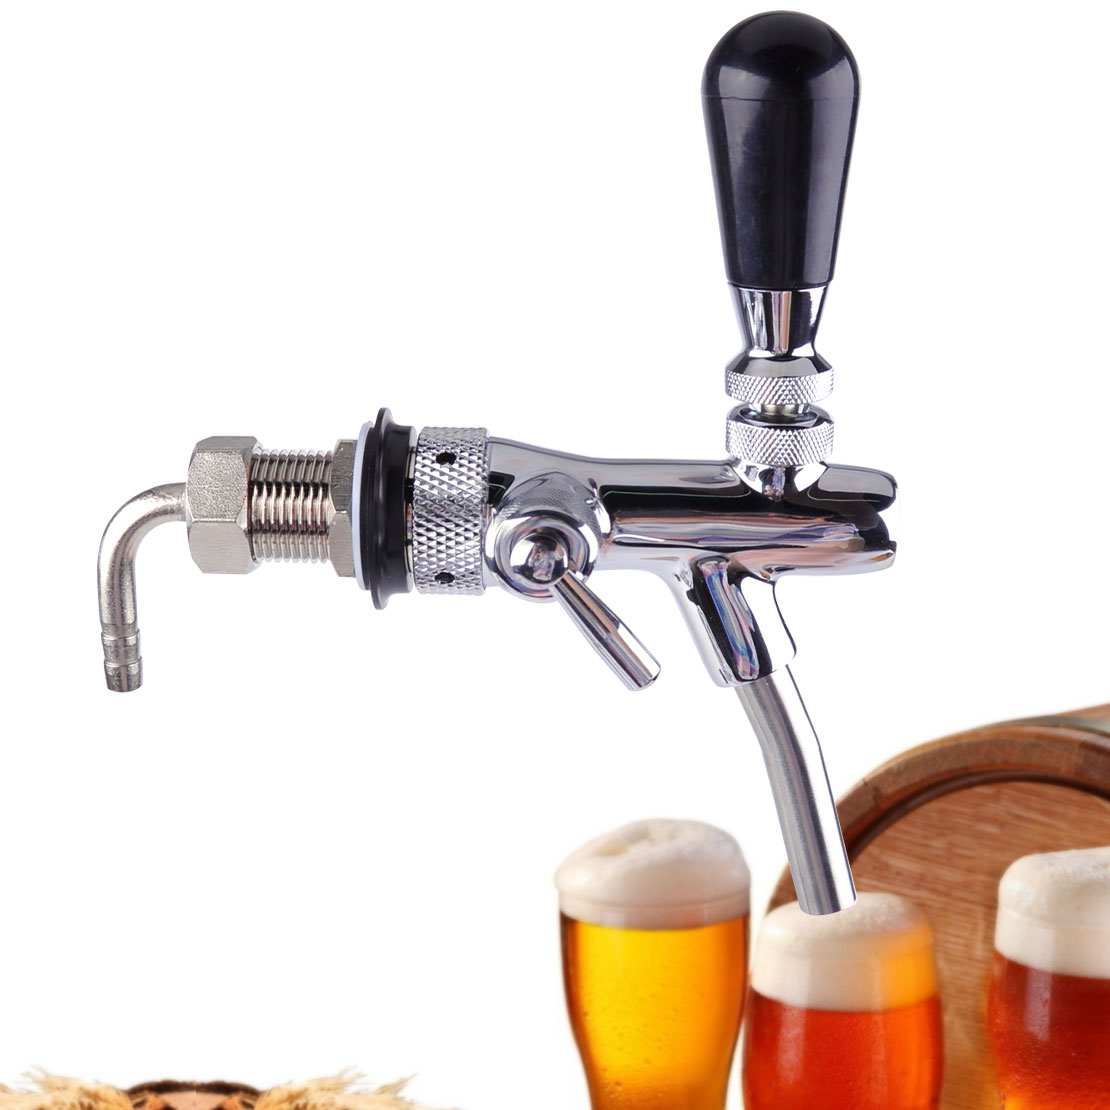 Beer Faucet Shank Thread Size - Faucets Ideas